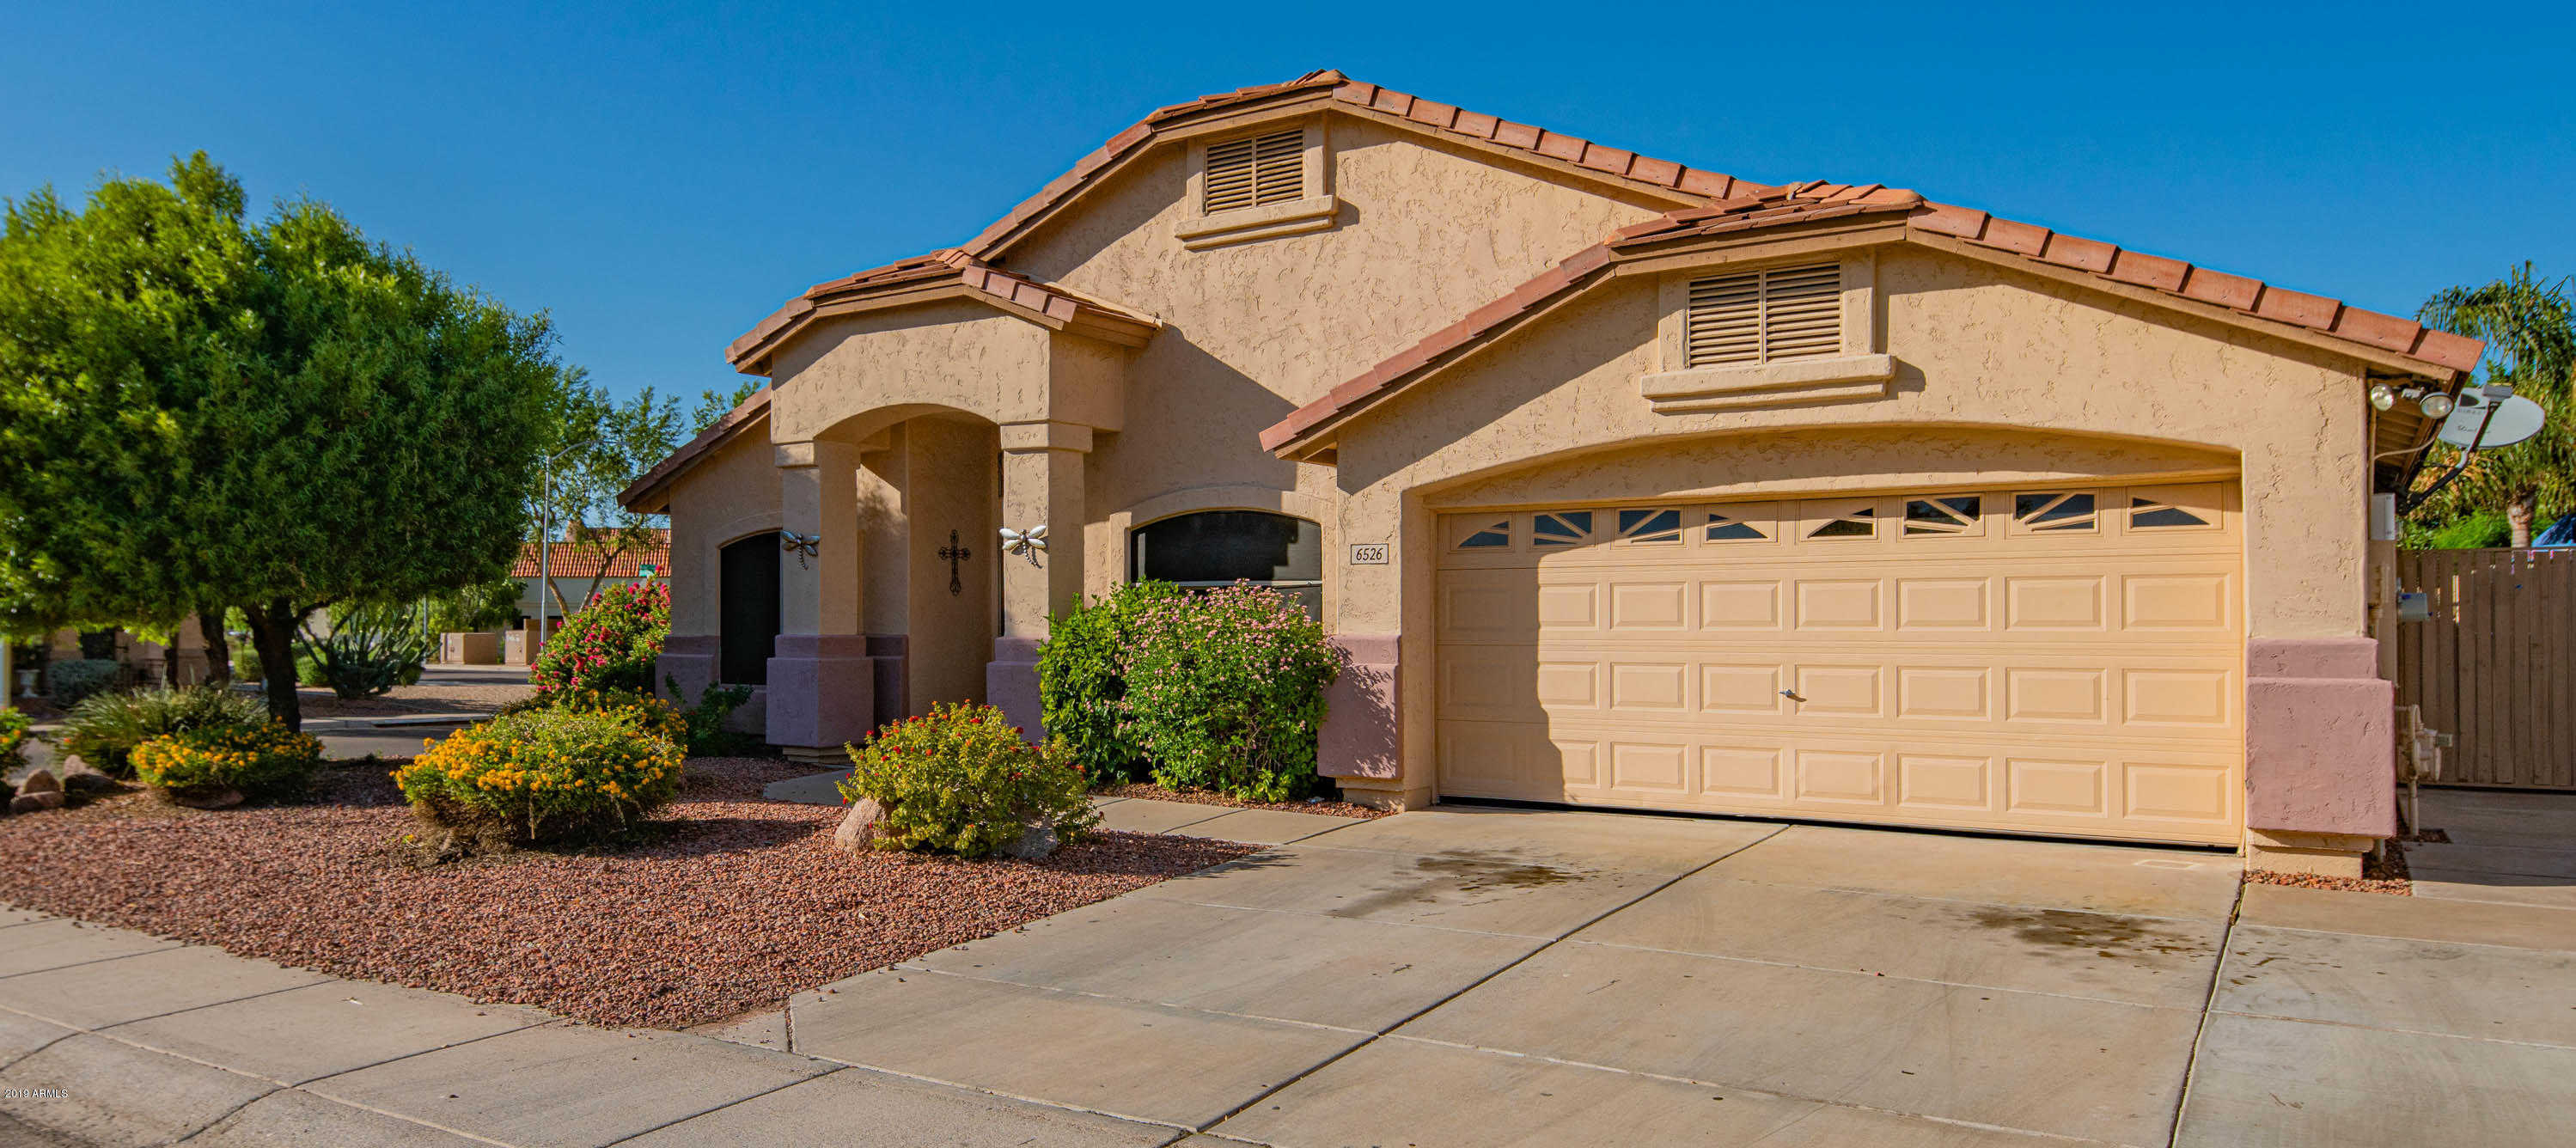 $378,000 - 4Br/2Ba - Home for Sale in Highlands At Arrowhead Ranch 1, Glendale